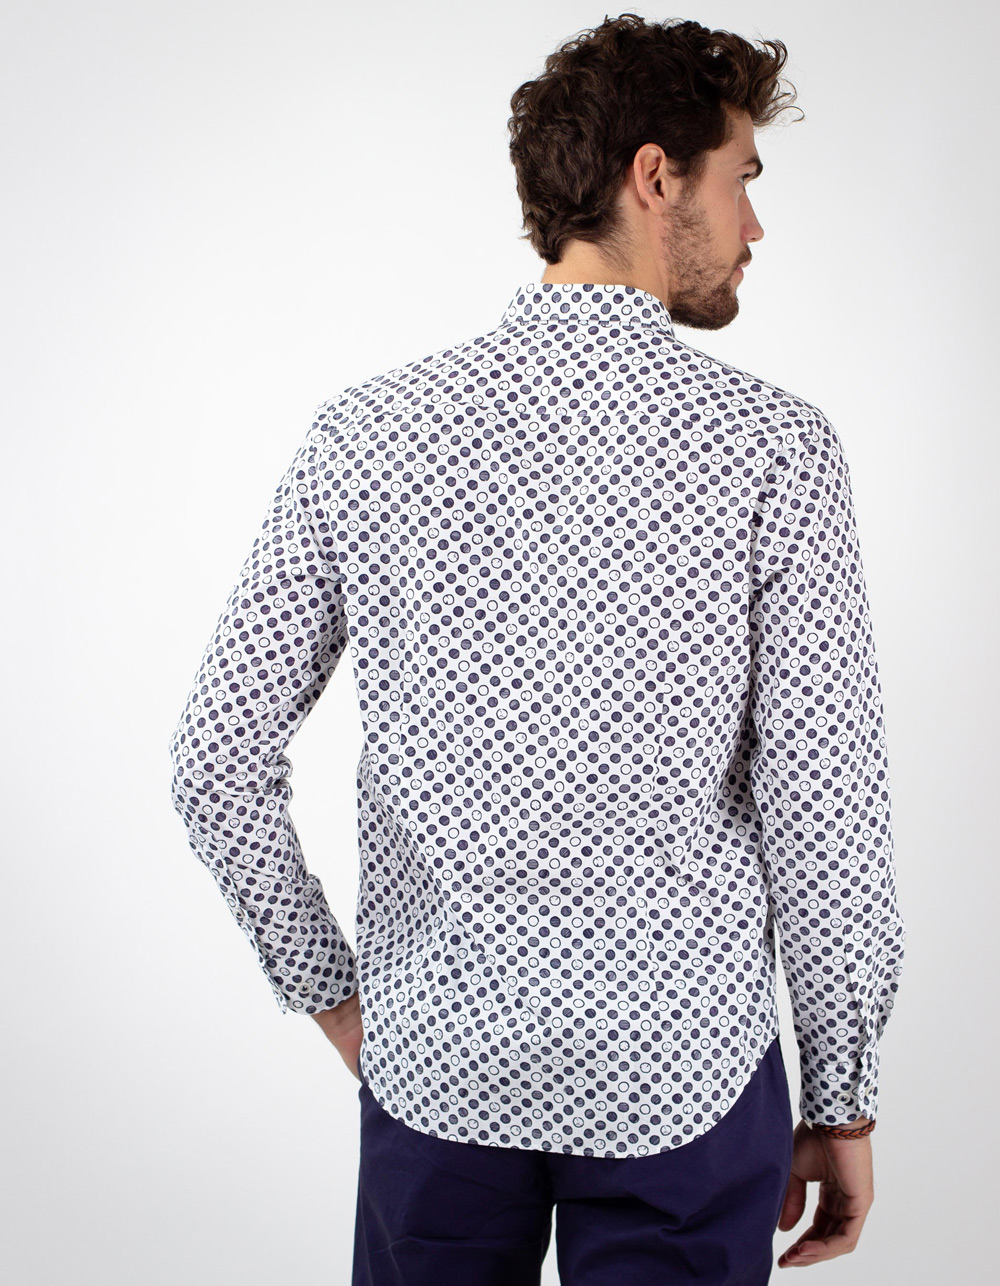 White shirt with print circular blue - Backside